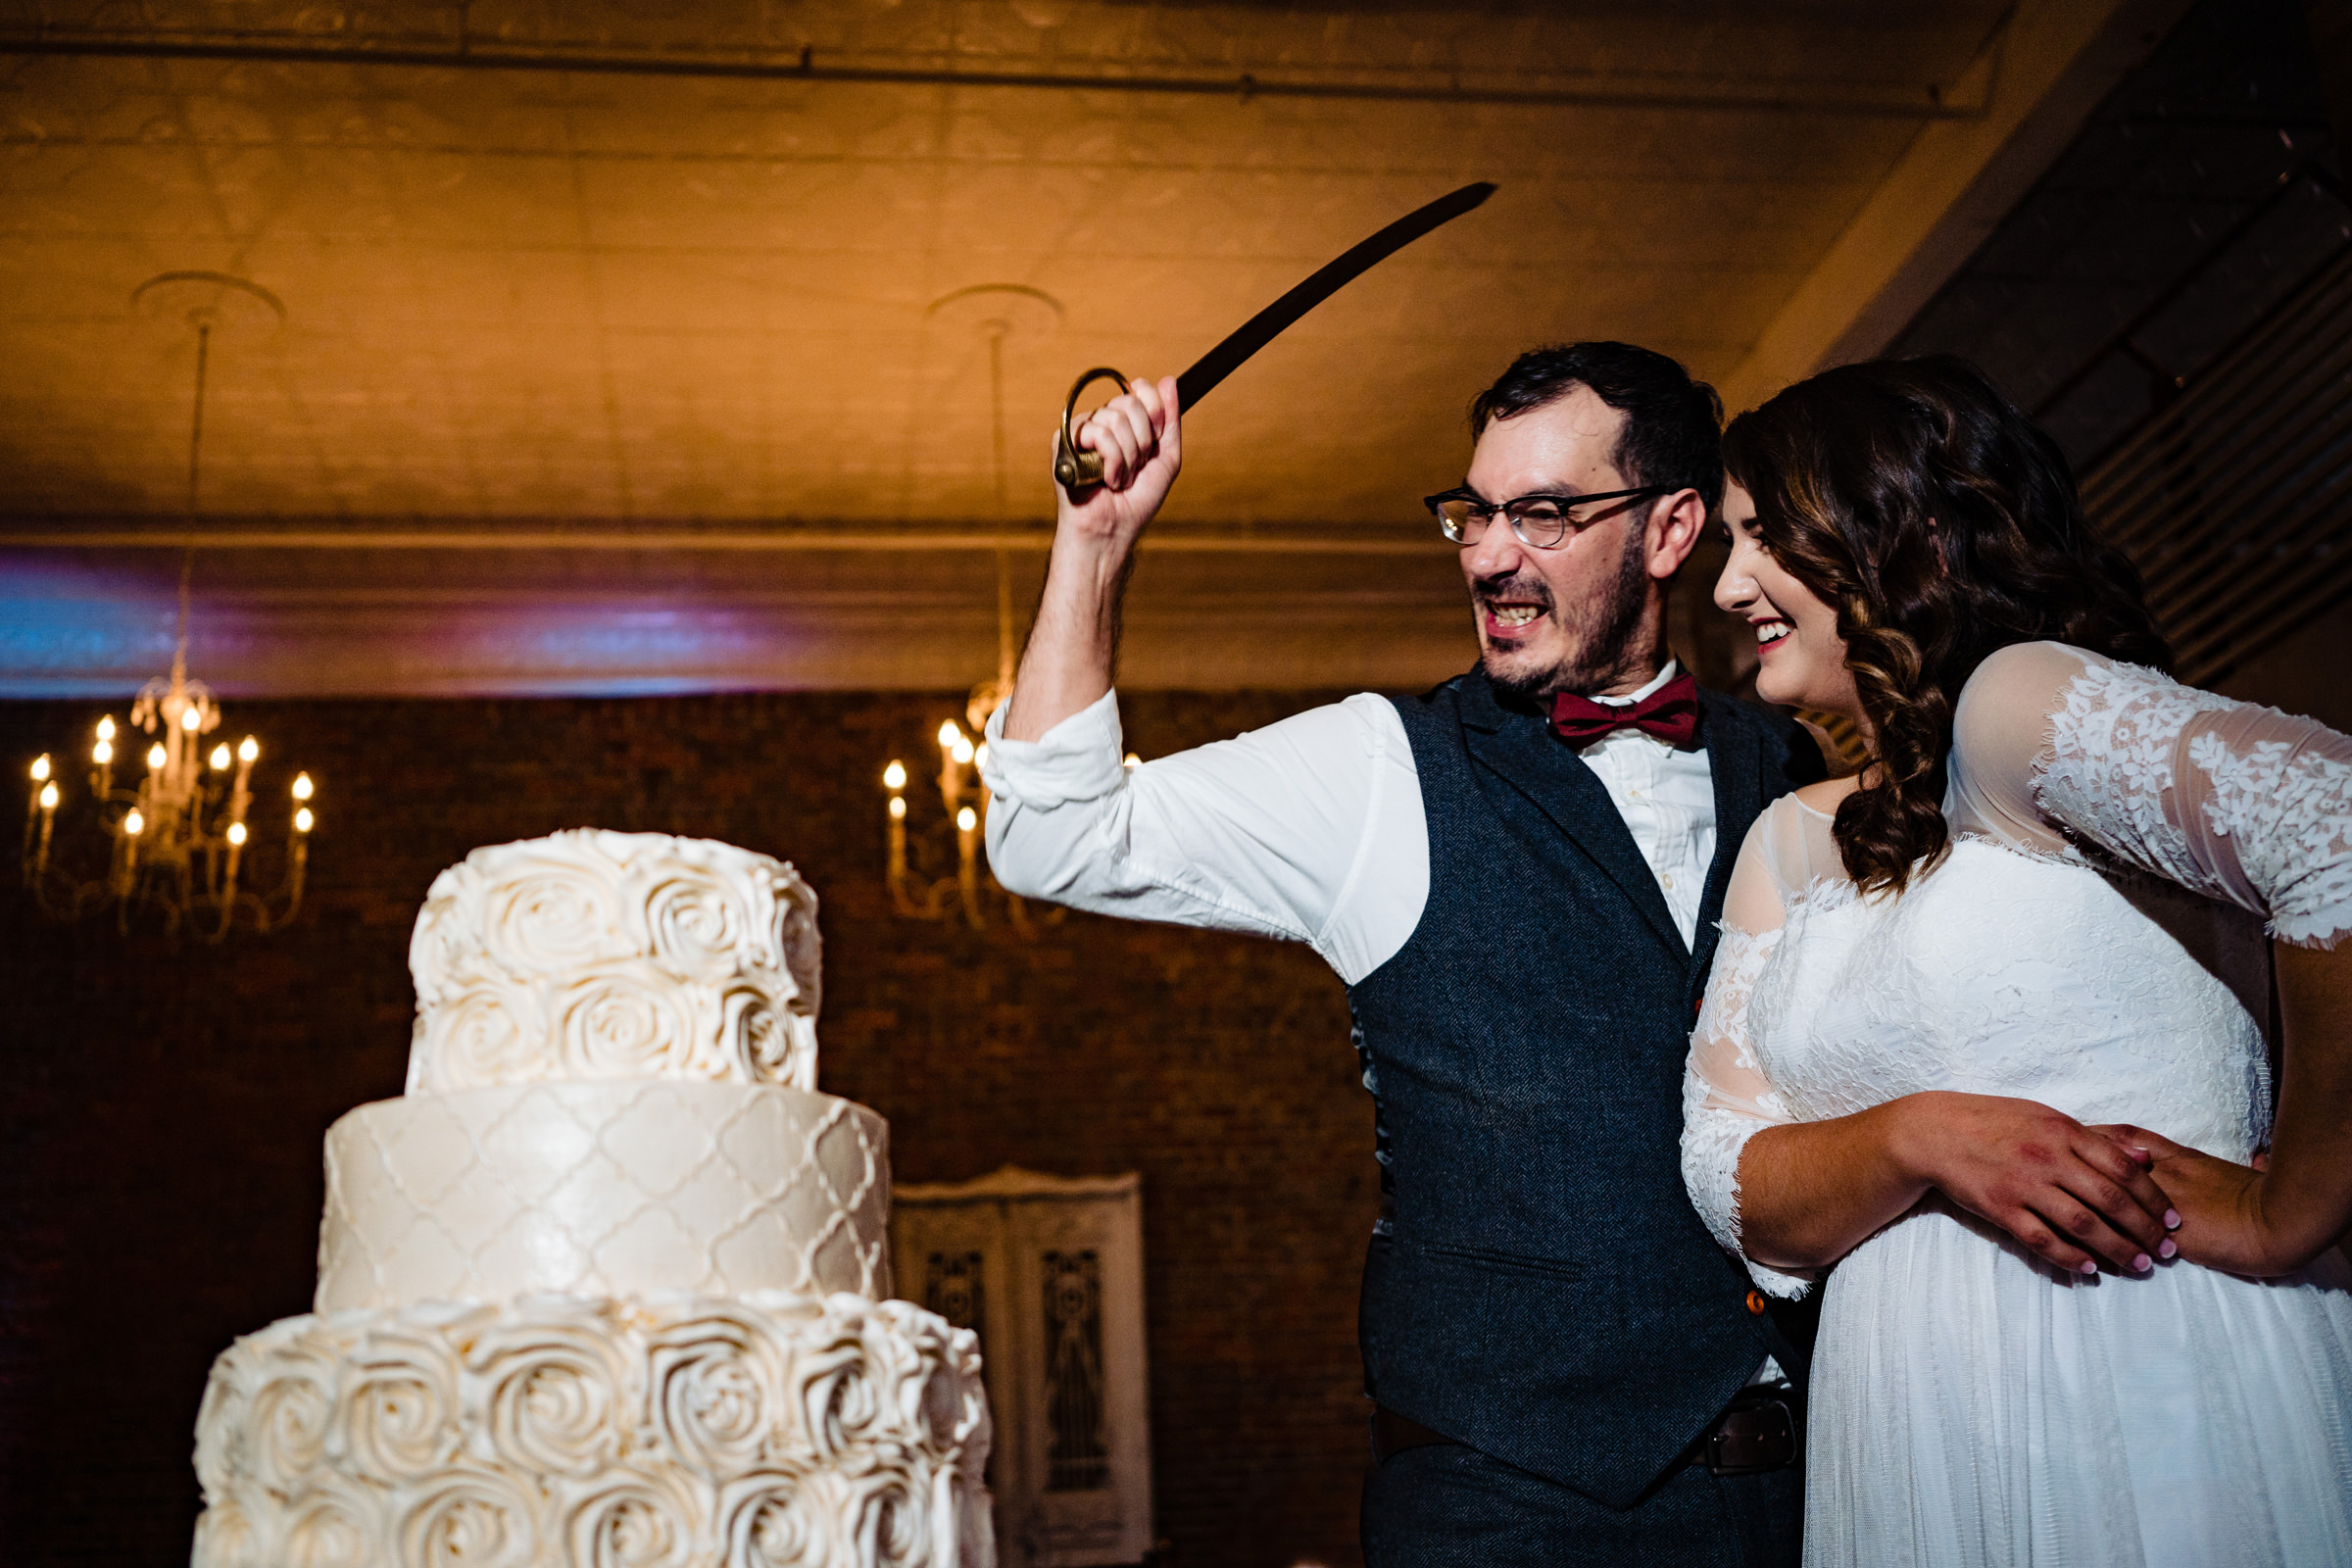 Groom goes after wedding cake with a sabre - Vinson Images - Arkansas